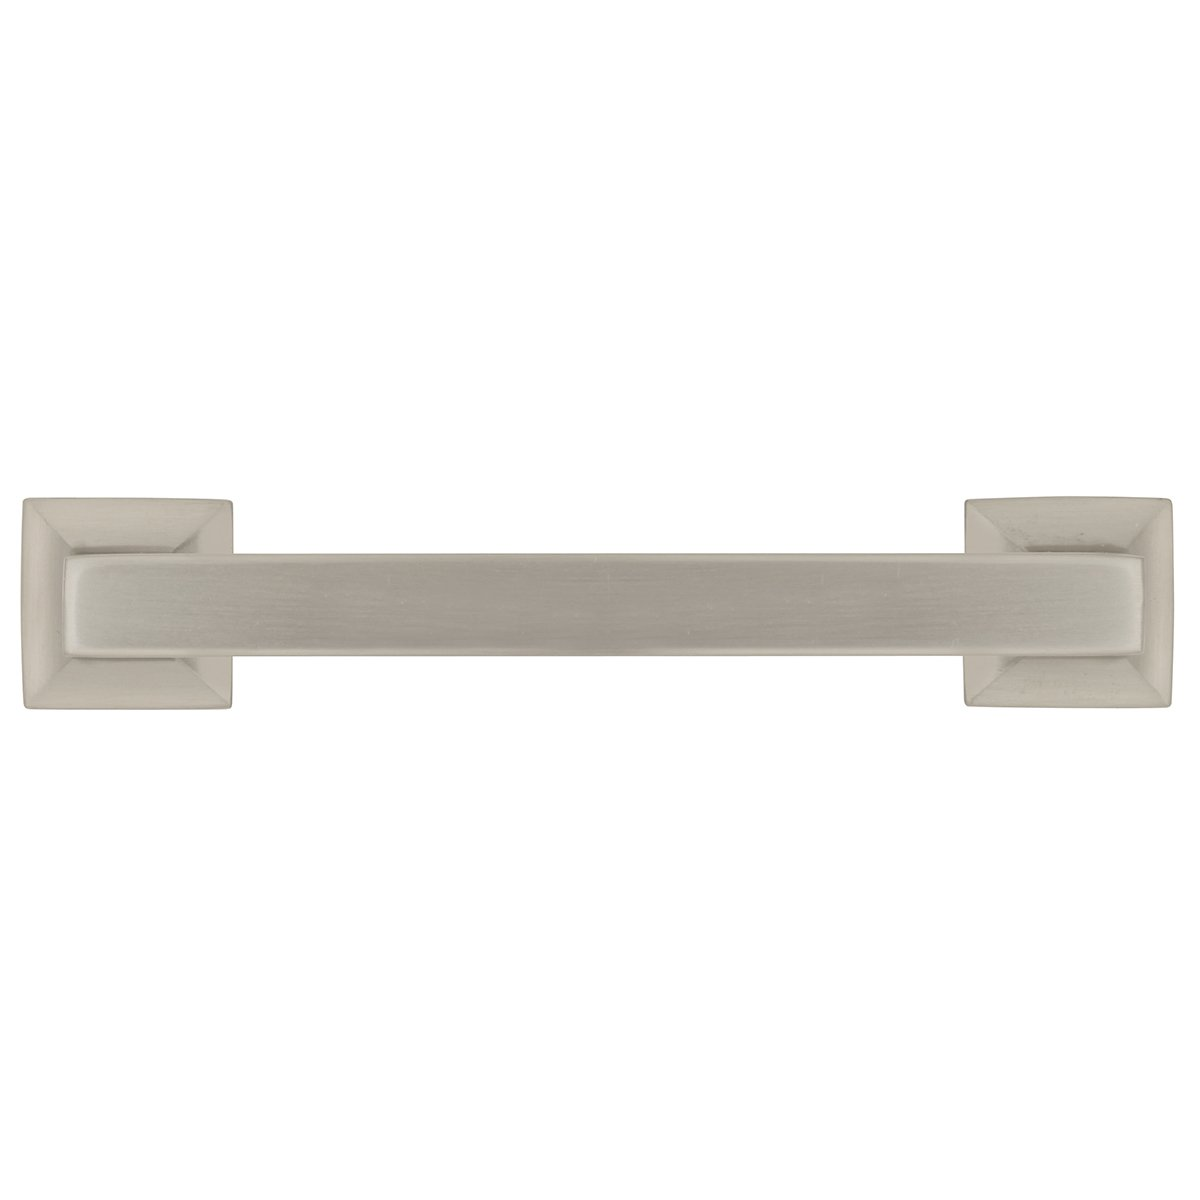 10-Pack Dynasty Hardware P-86954-AC-10PK Arched Cabinet Hardware Pull Antique Copper